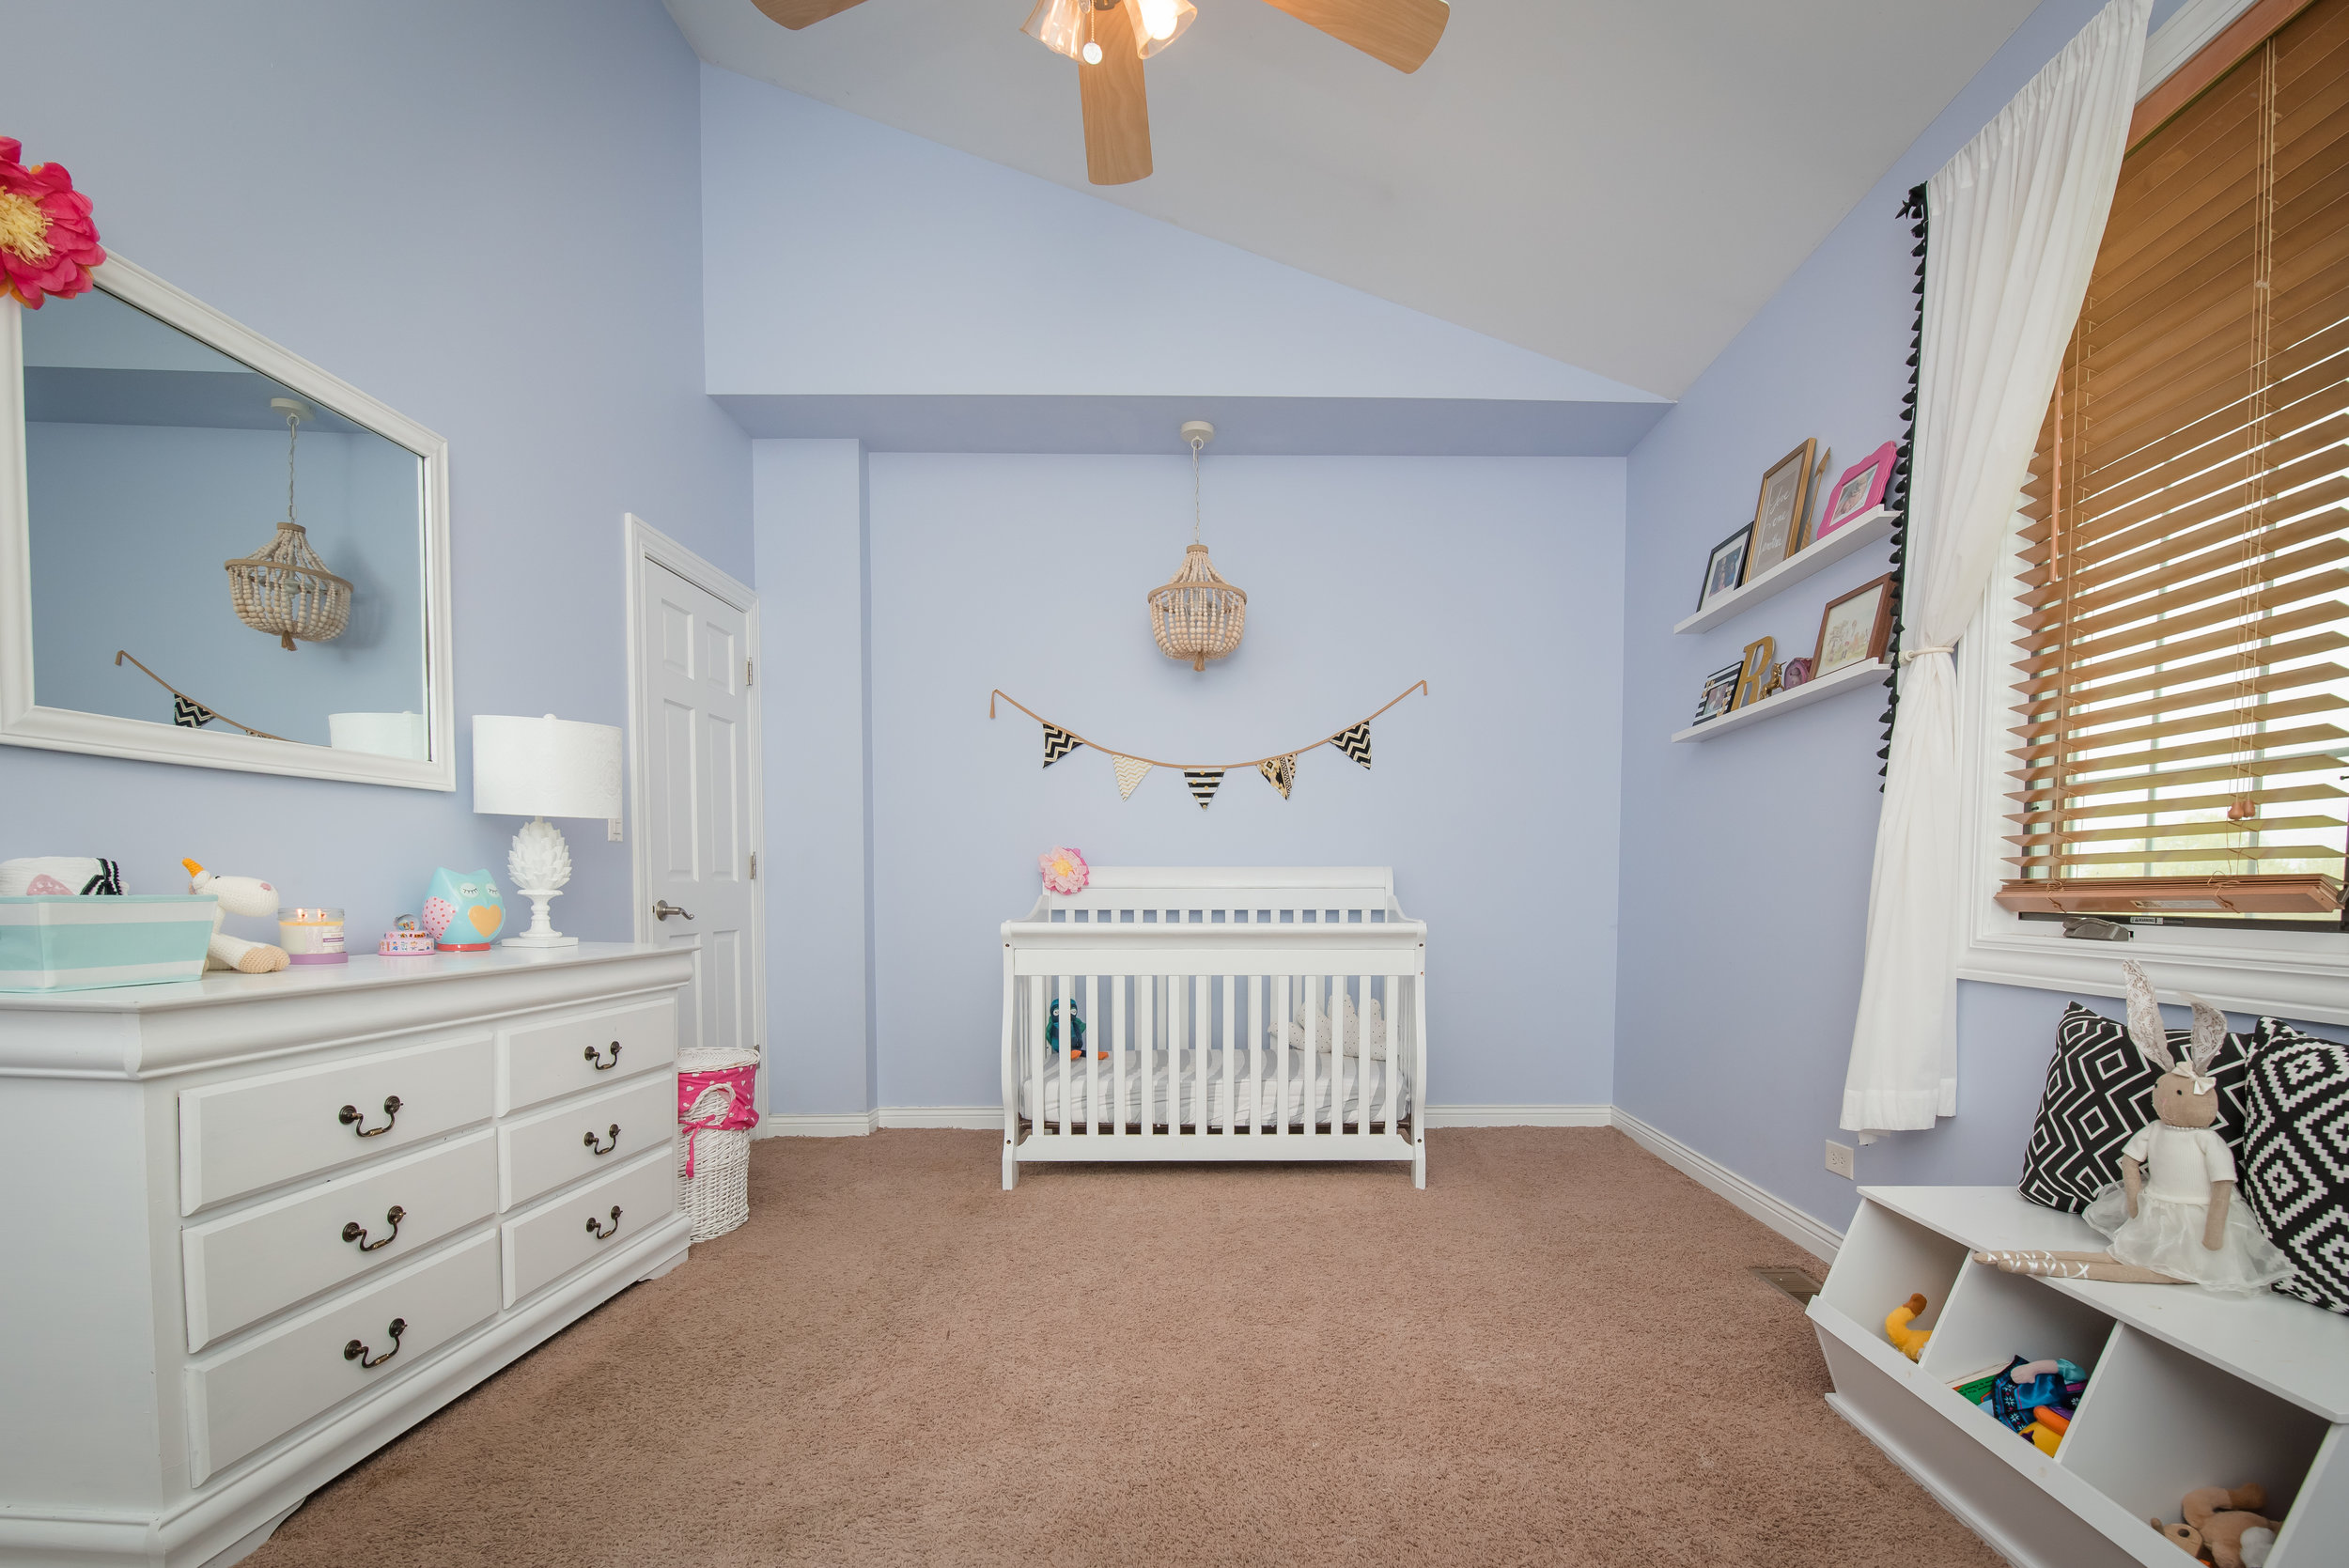 Kids Rooms - Remove the Diaper Genie and trash cans from the roomClear the diaper changing area to remove clutterMake crib, just like you would a bedRemove any stick on wall decalsClear out all the toys that are on the ground and put away the foam play matts